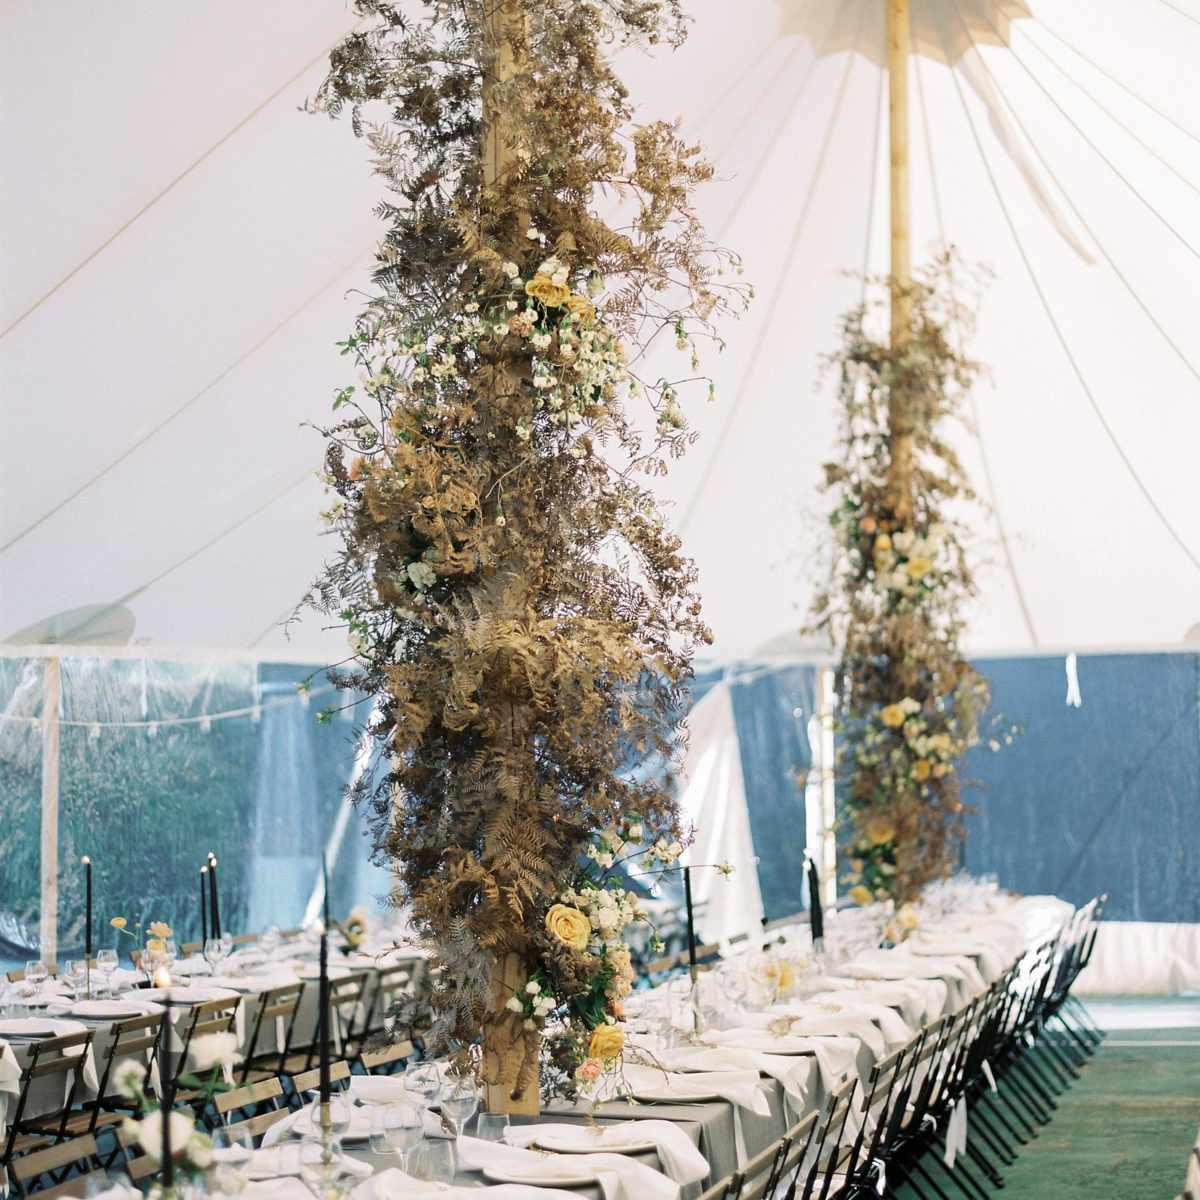 Flower-wrapped tent poles